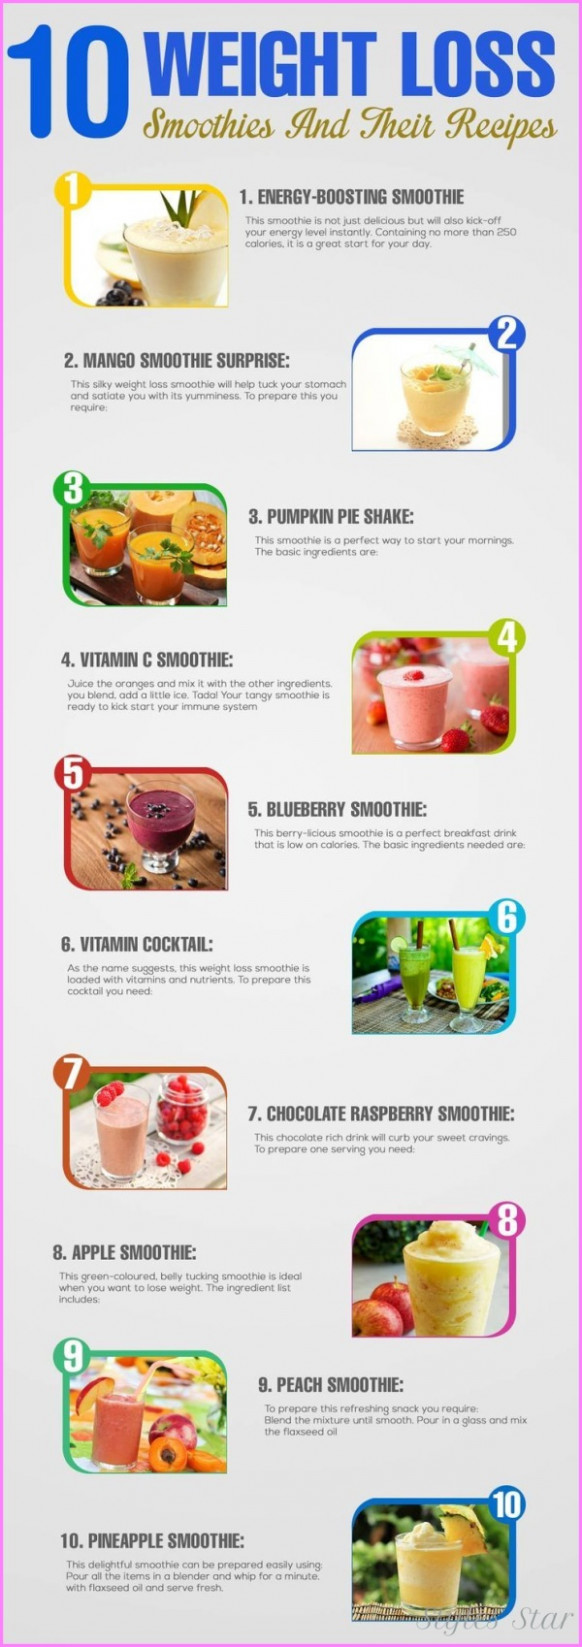 Healthy Smoothie Recipes For Losing Weight - Star Styles ..